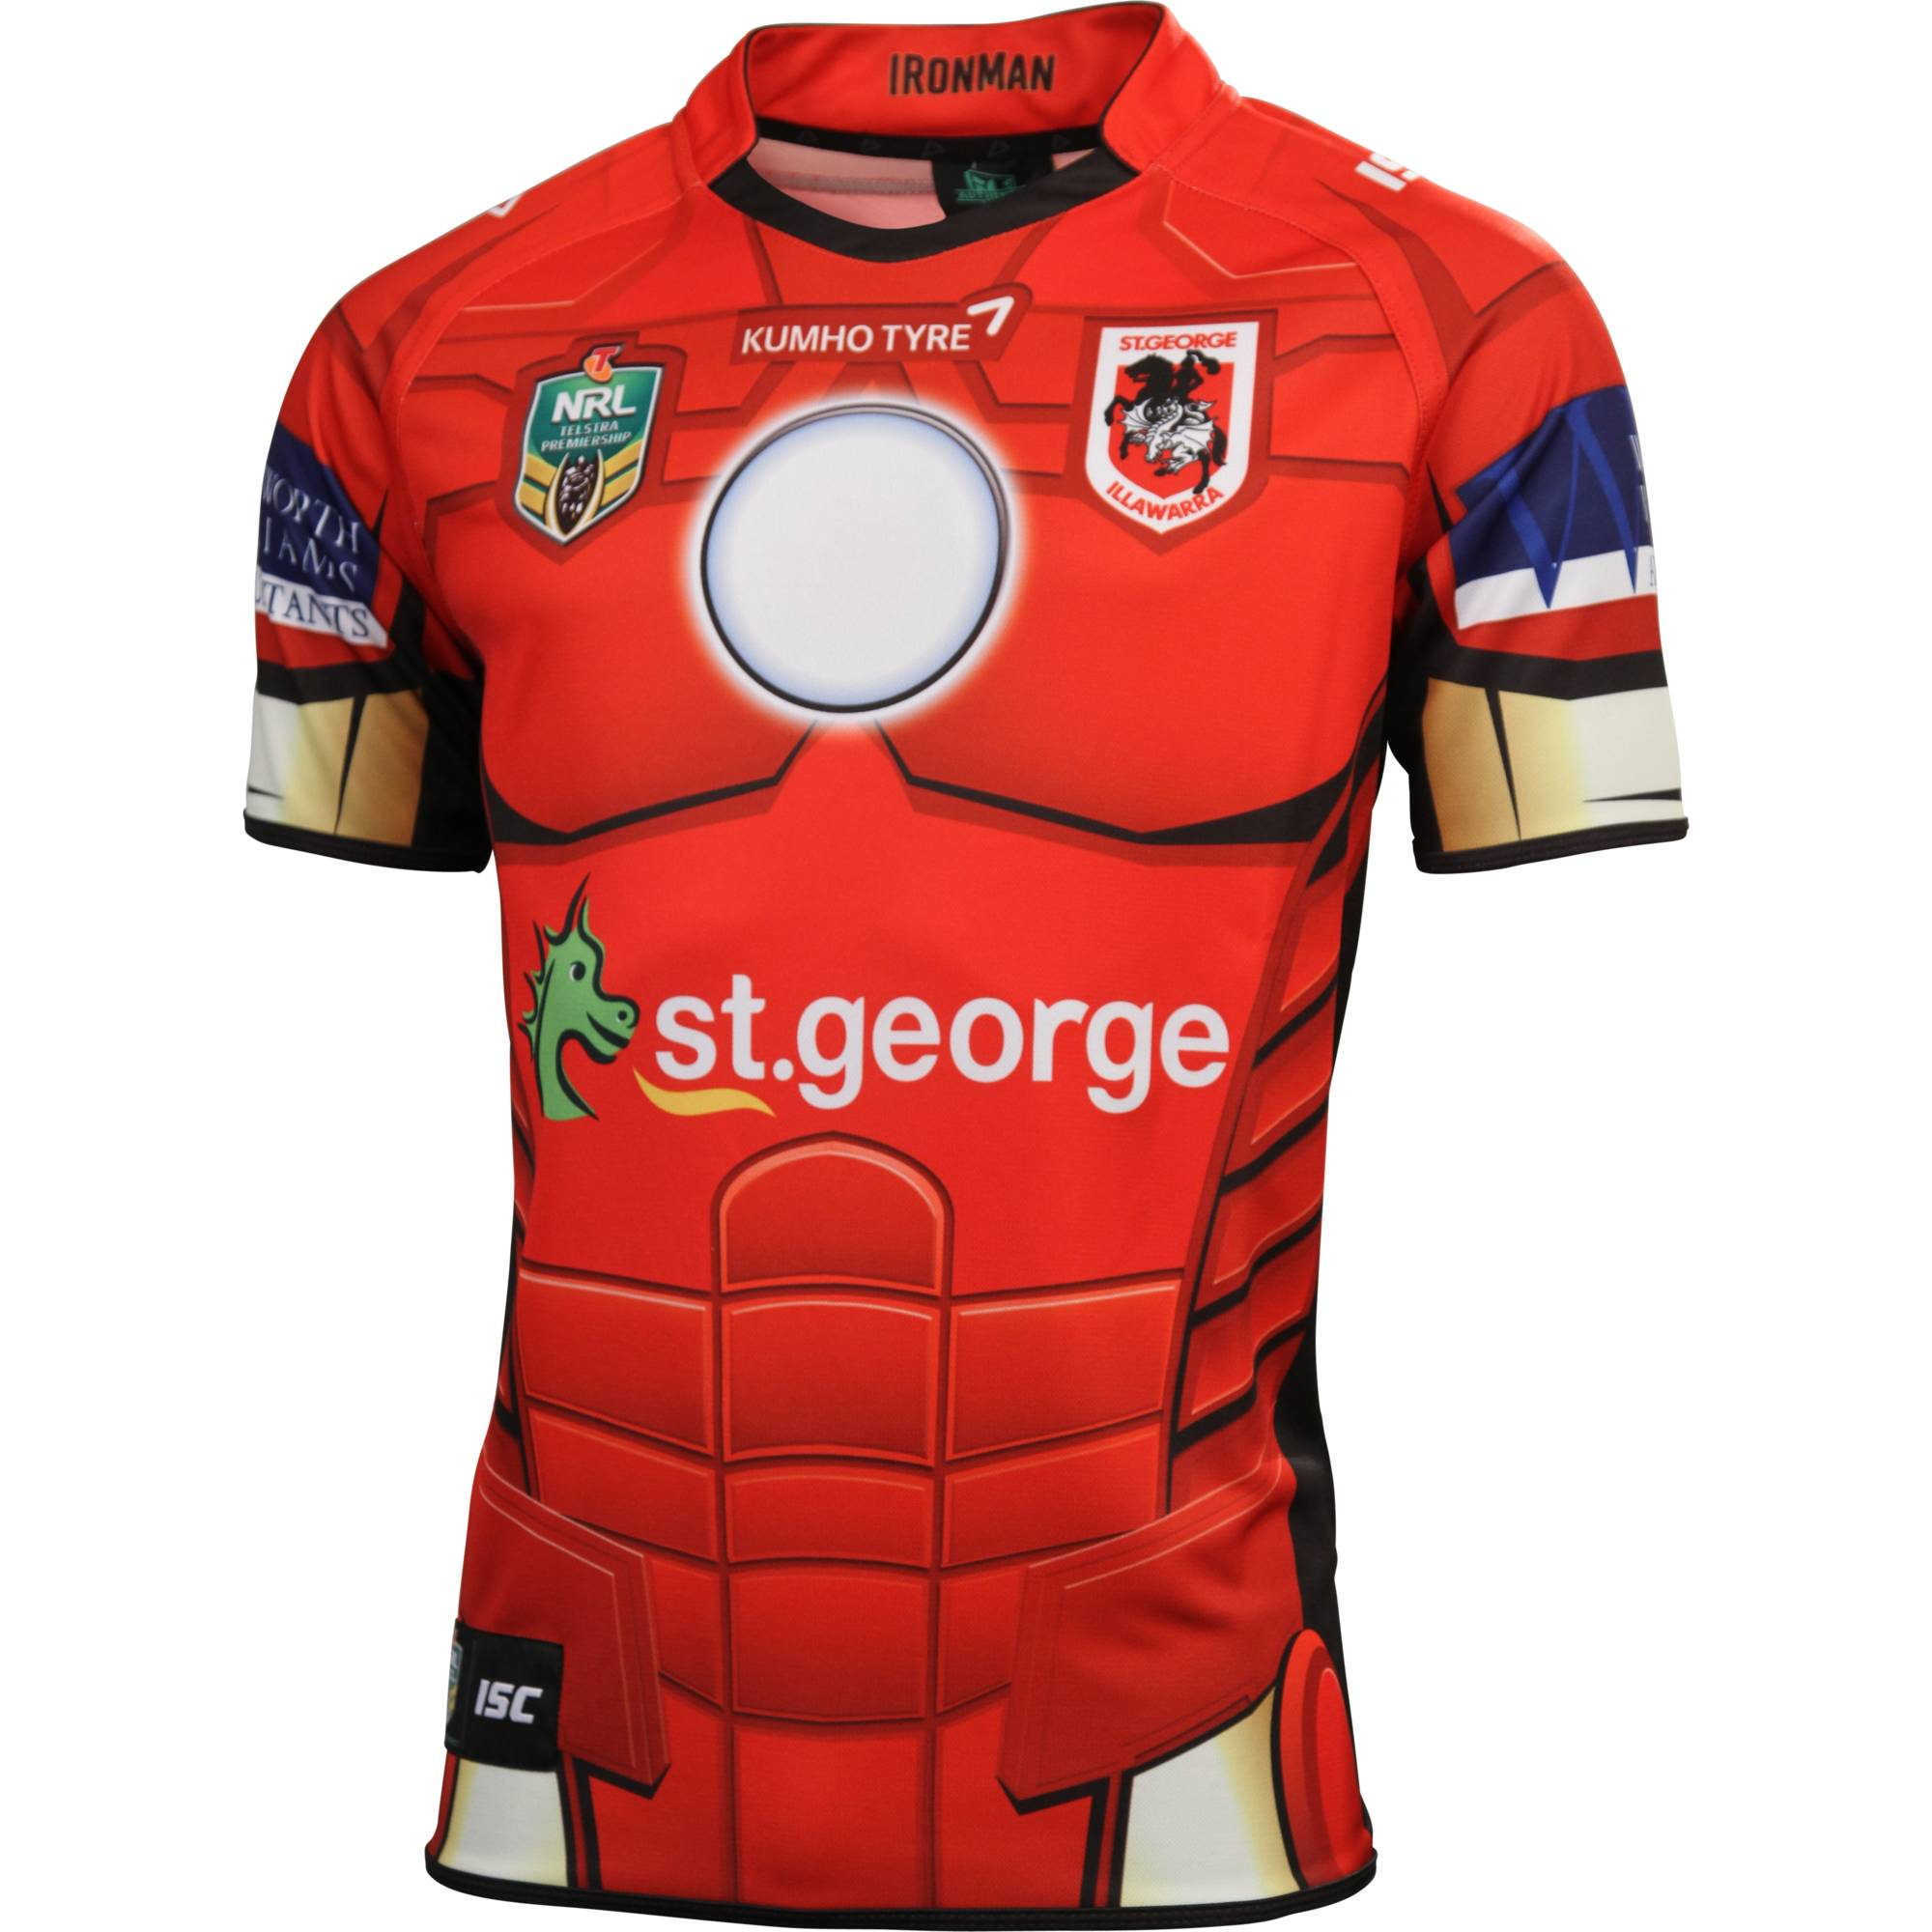 7160112494c ... read our review of the Dragons' regular season shirts, you'll know  that, amongst other things, we were not too impressed with the red  alternate jersey.